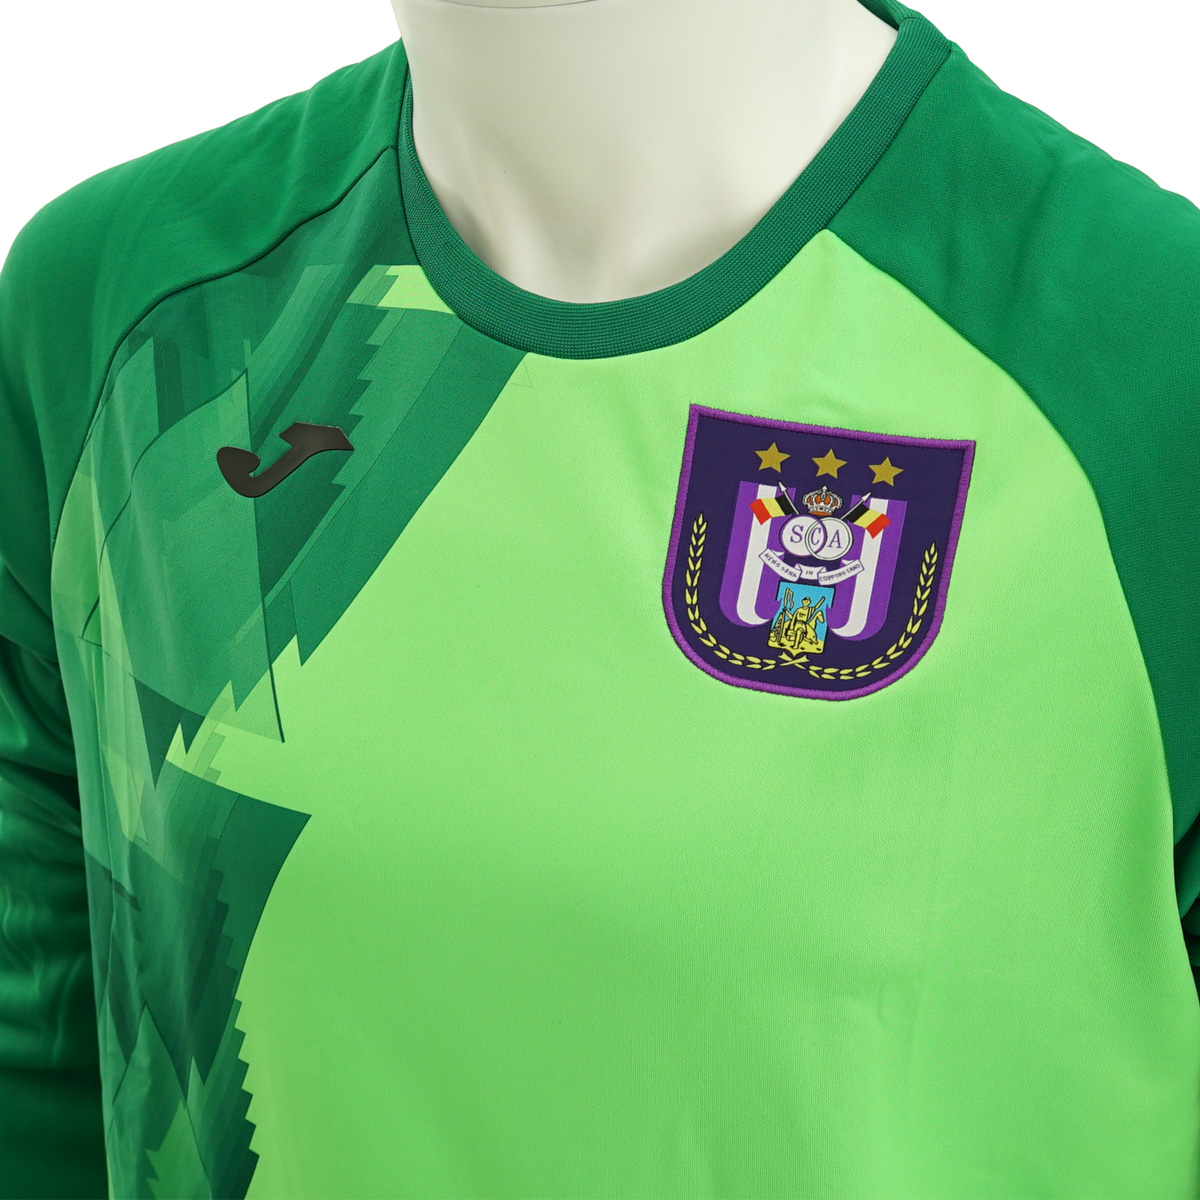 RSCA Trainingtop 2020/2021 - Groen